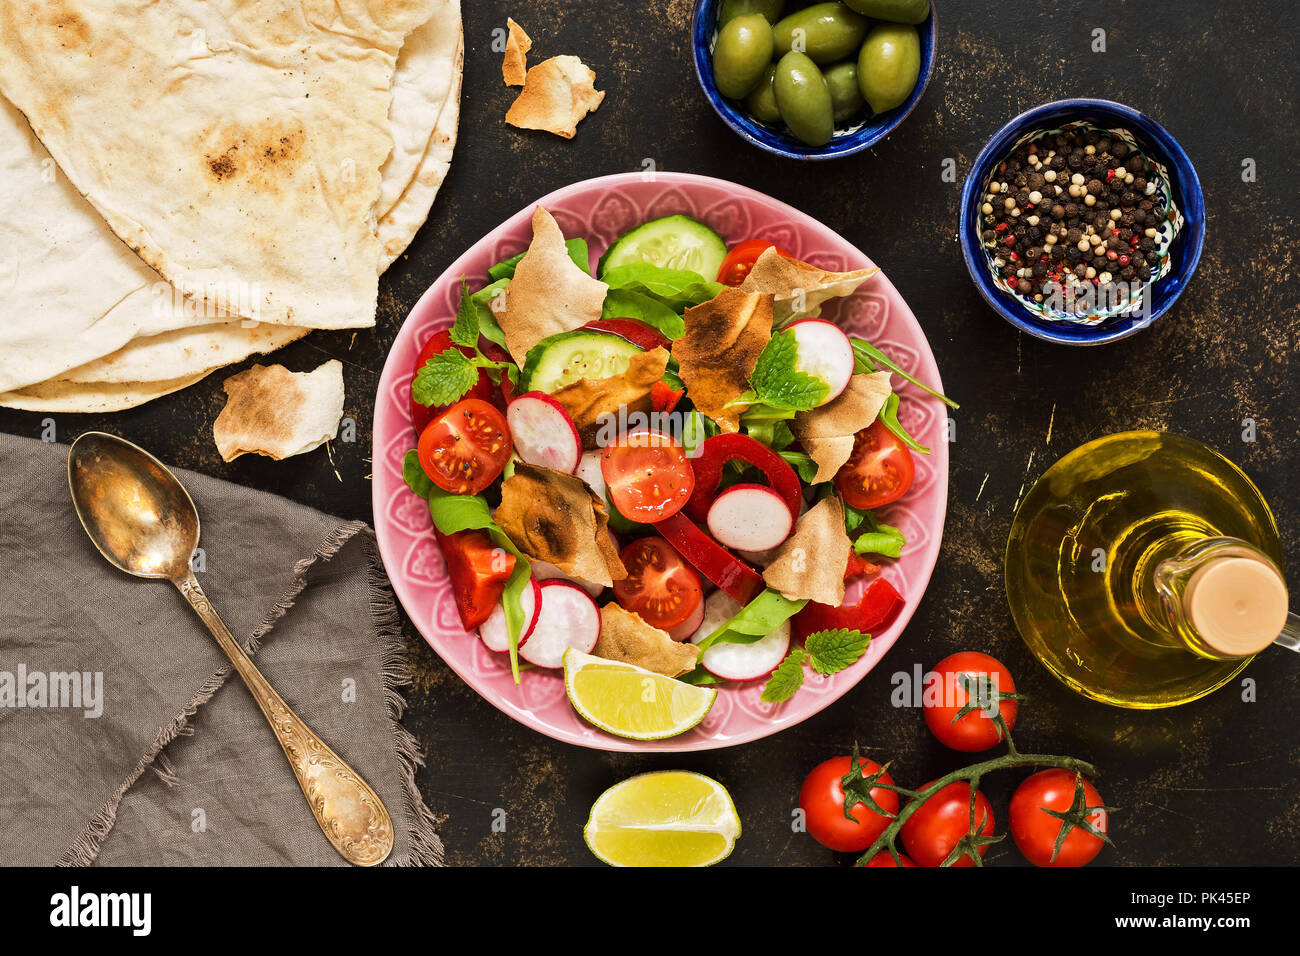 Arabic dish salad fattoush. Pita bread, tomatoes and seasonings. View from above - Stock Image